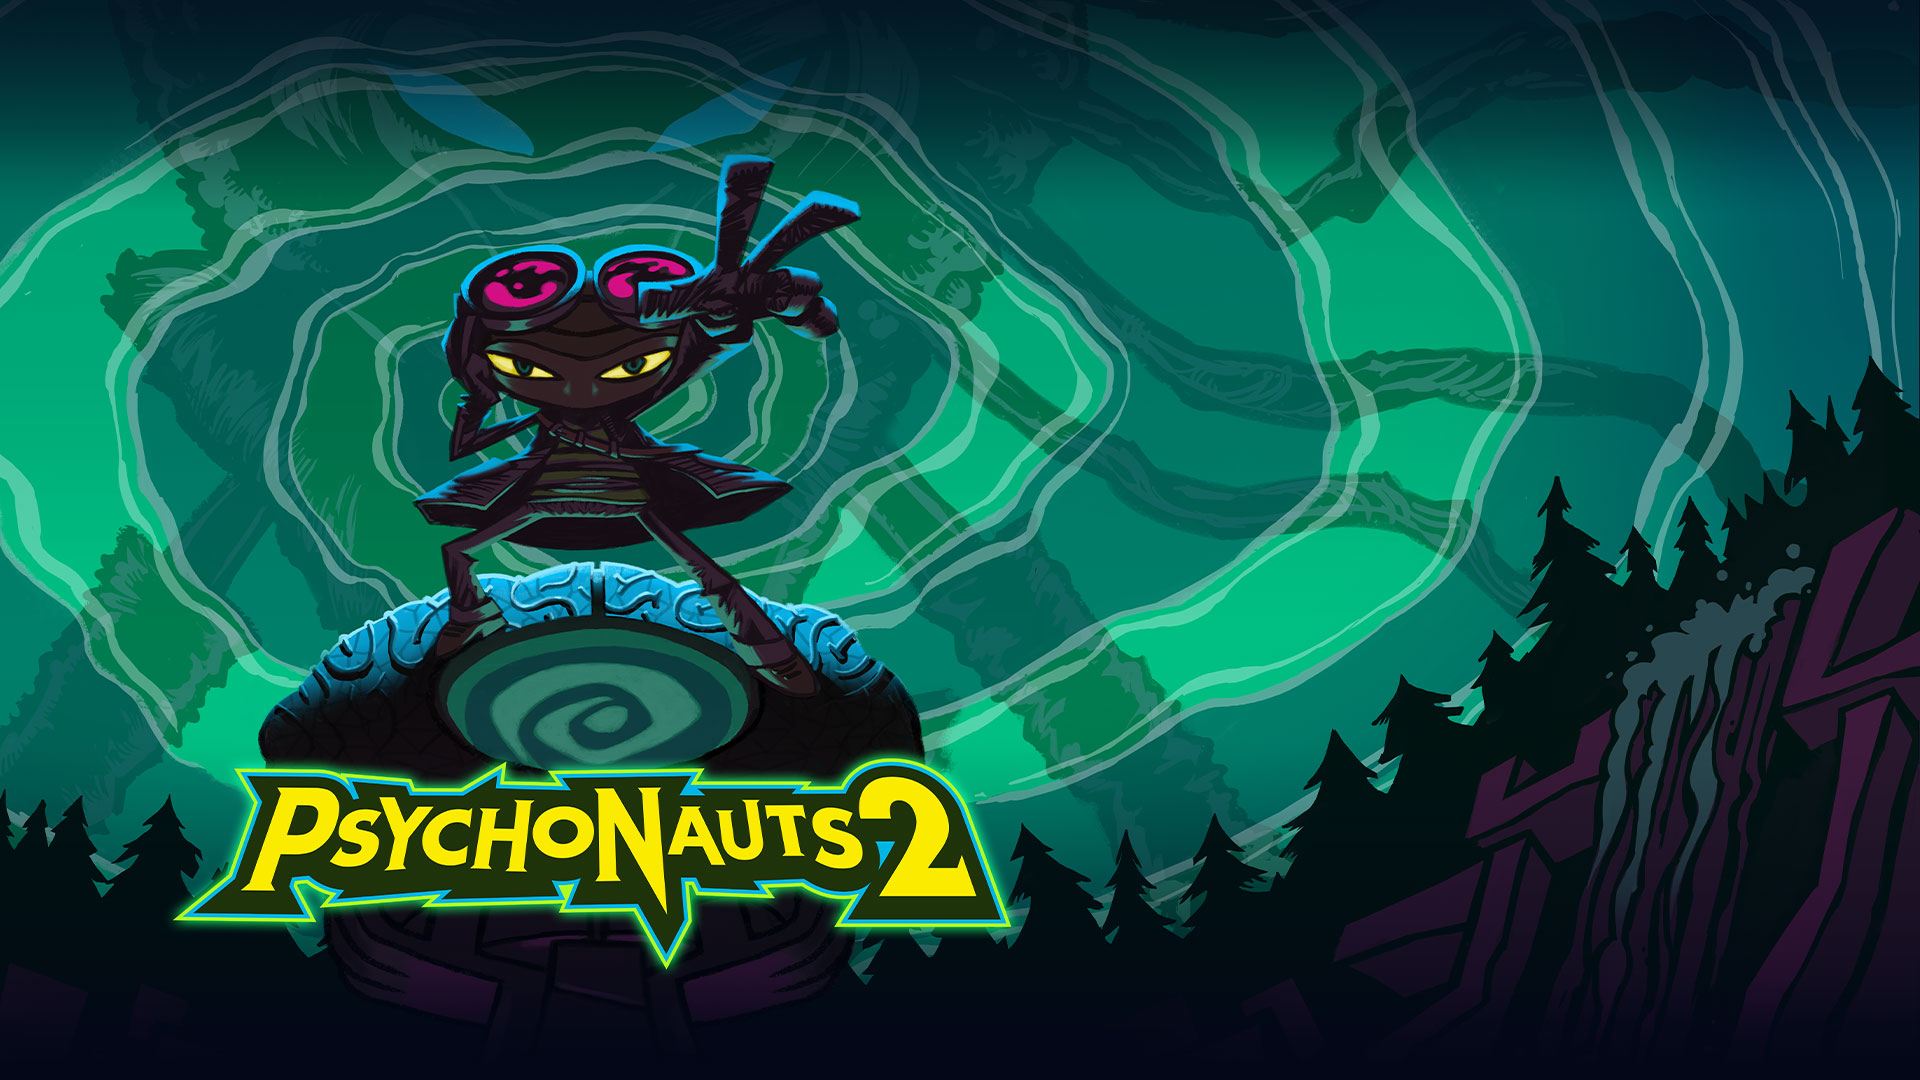 Psychonauts 2, character standing with their hand out with a dark forest and a large character stands behind them with green spiral sky